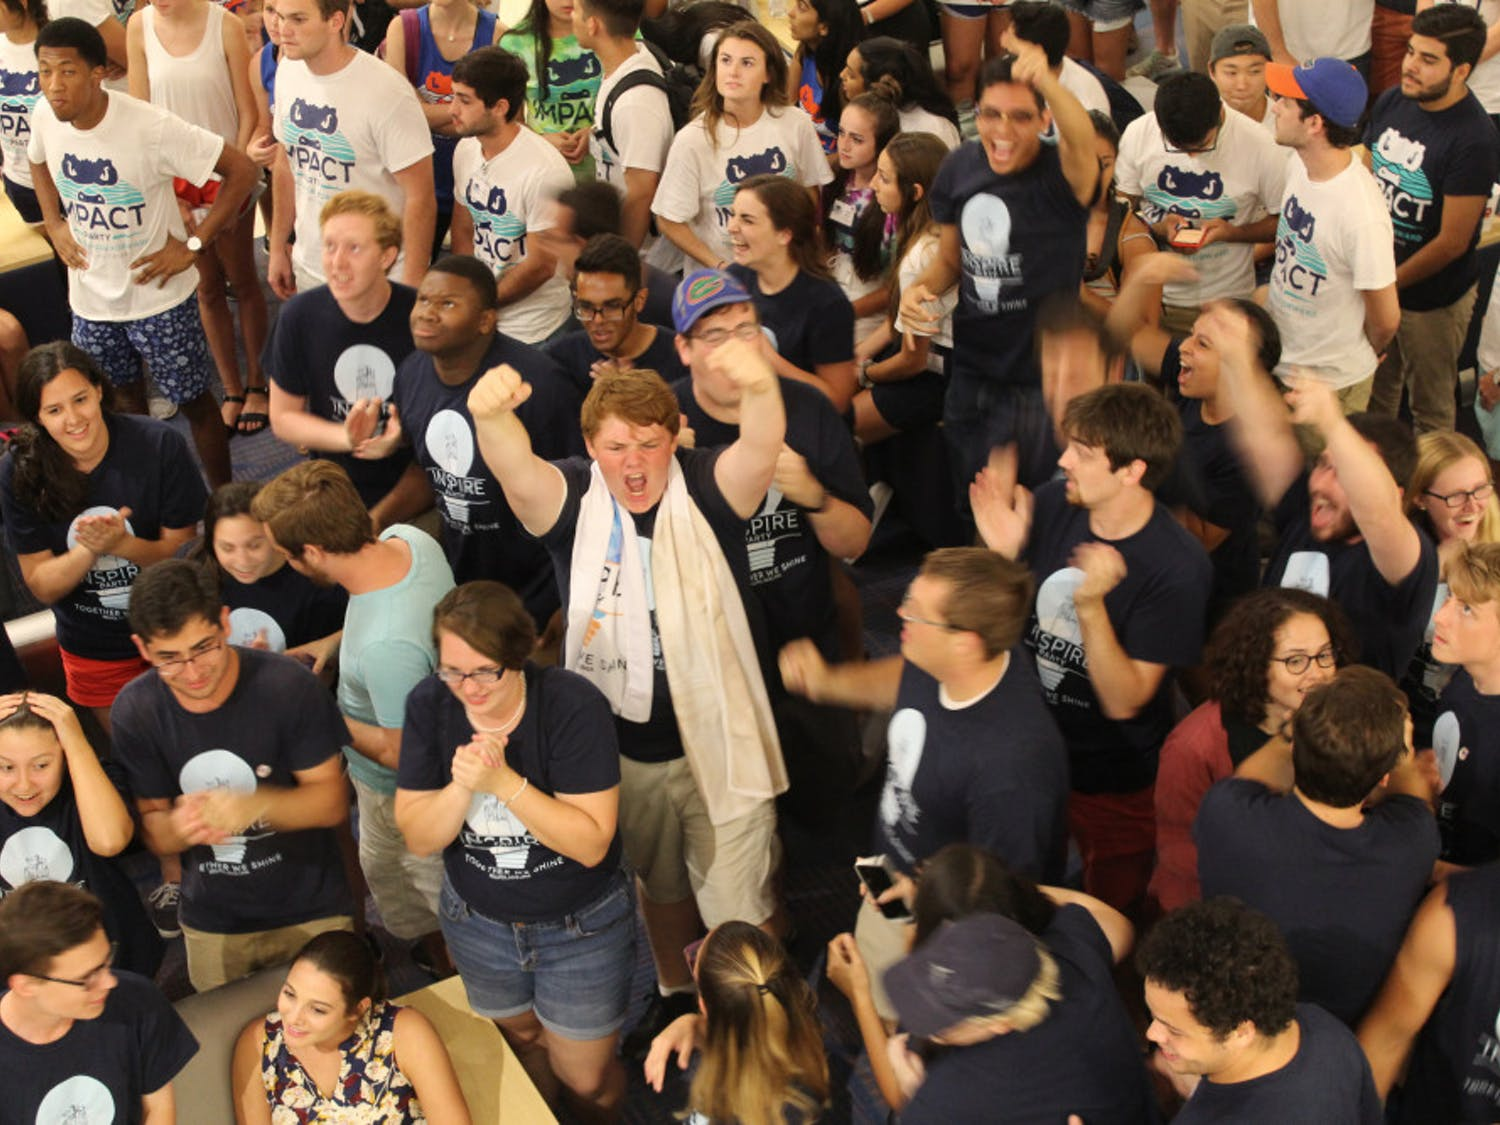 Inspire Party members cheer as Student Government election results are announced Wednesday night. Inspire won 20 seats, while Impact took 29.